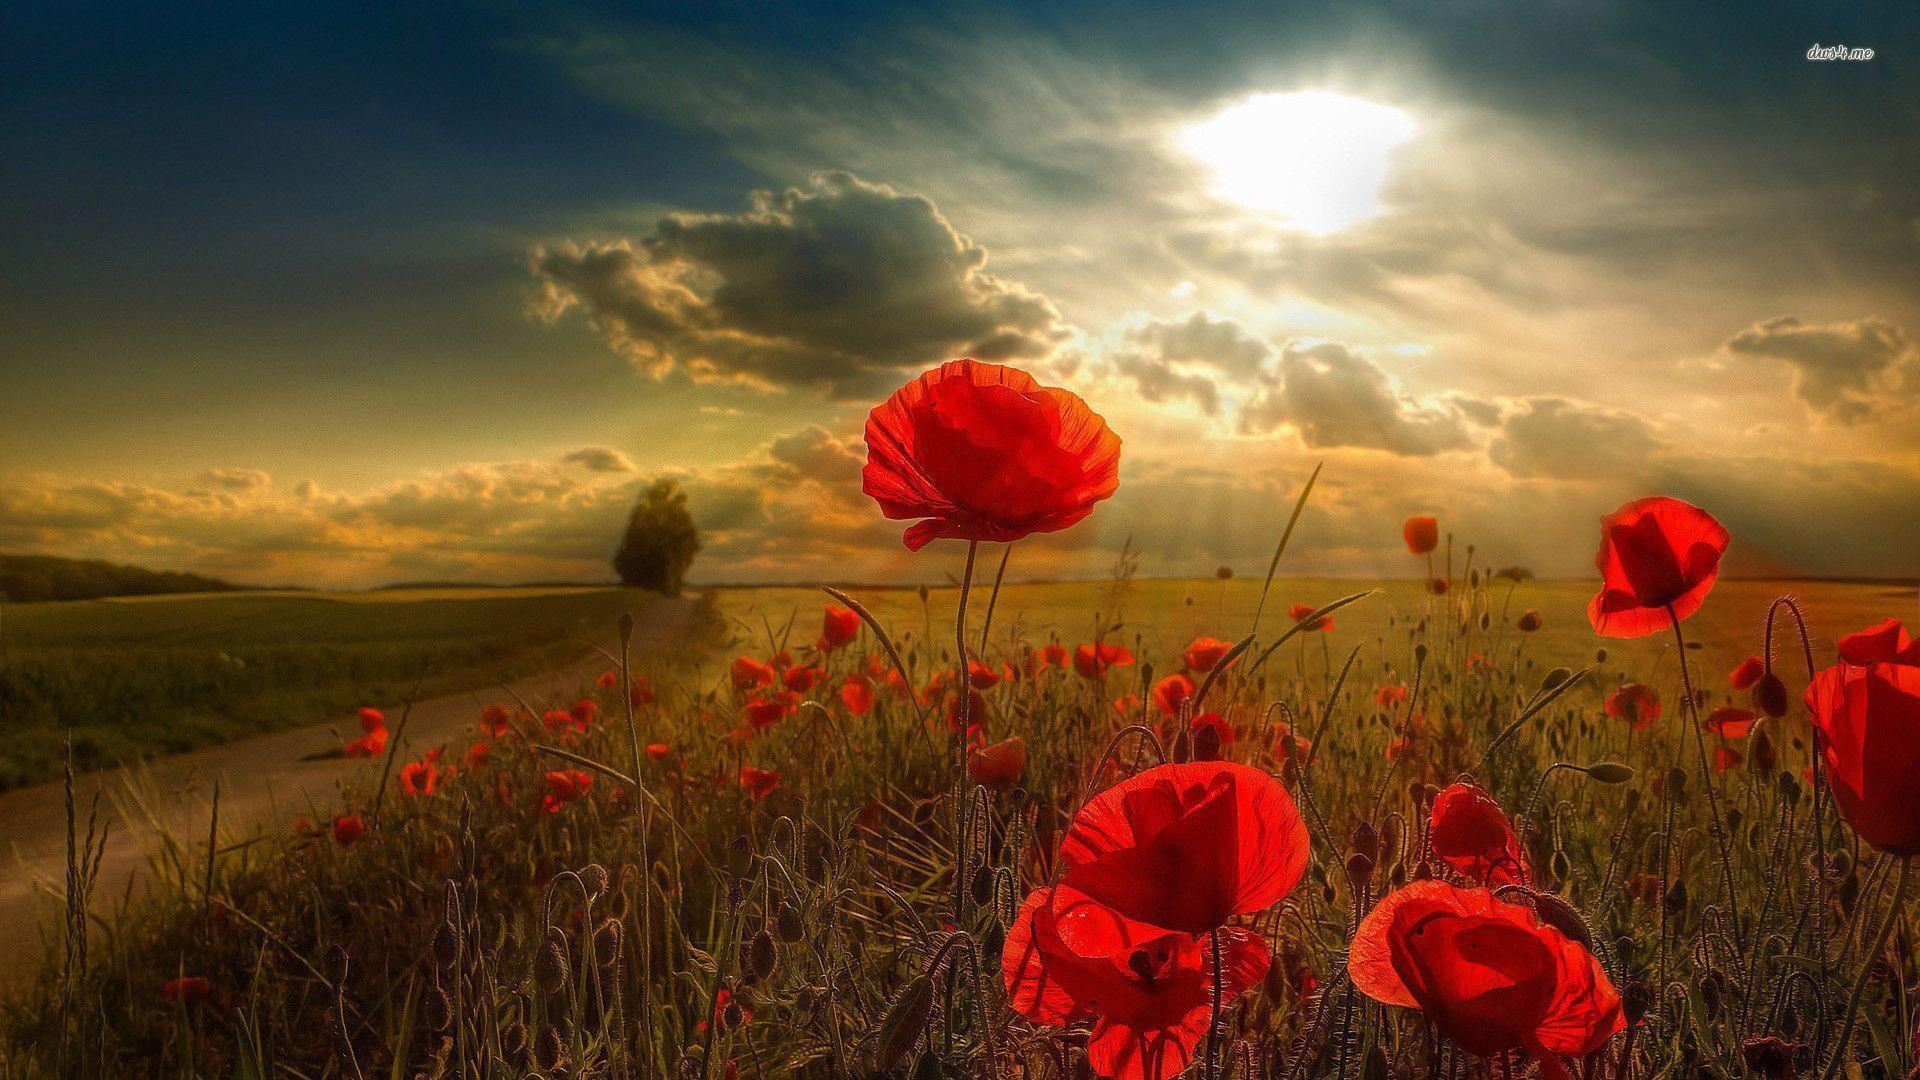 Wallpapers Poppies - Wallpaper Cave